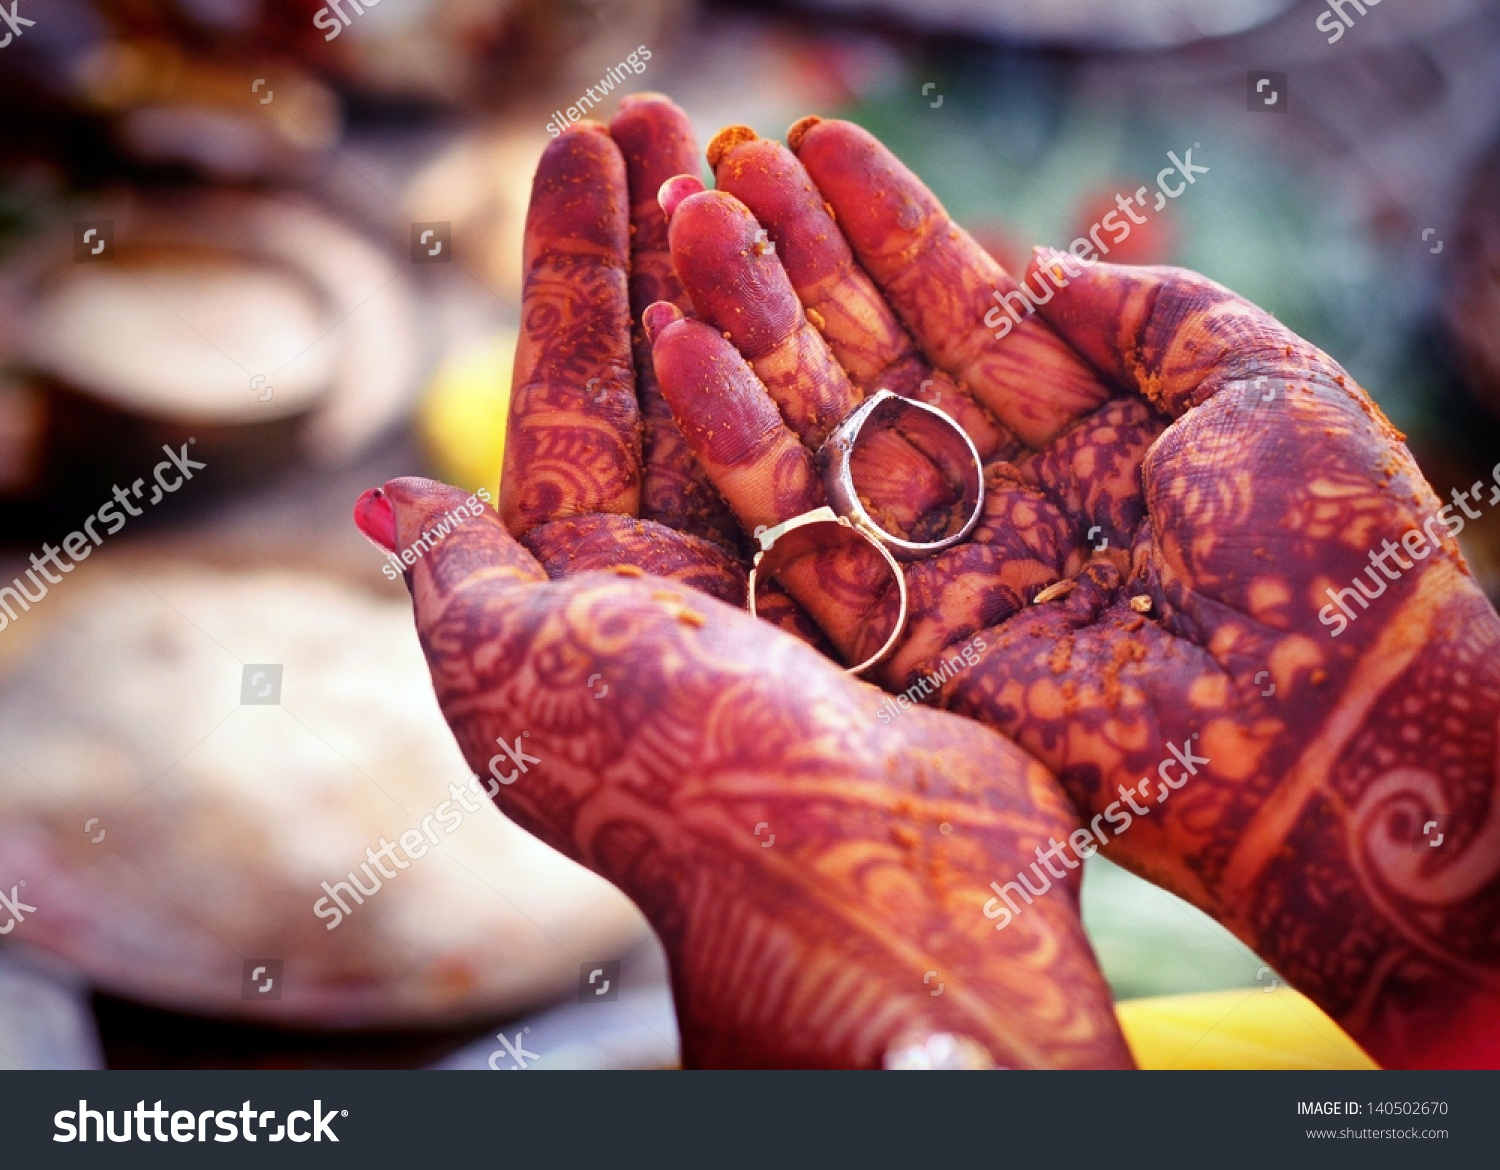 Indian Wedding Rituals Rings On Hands Stock Photo (Royalty Free ...